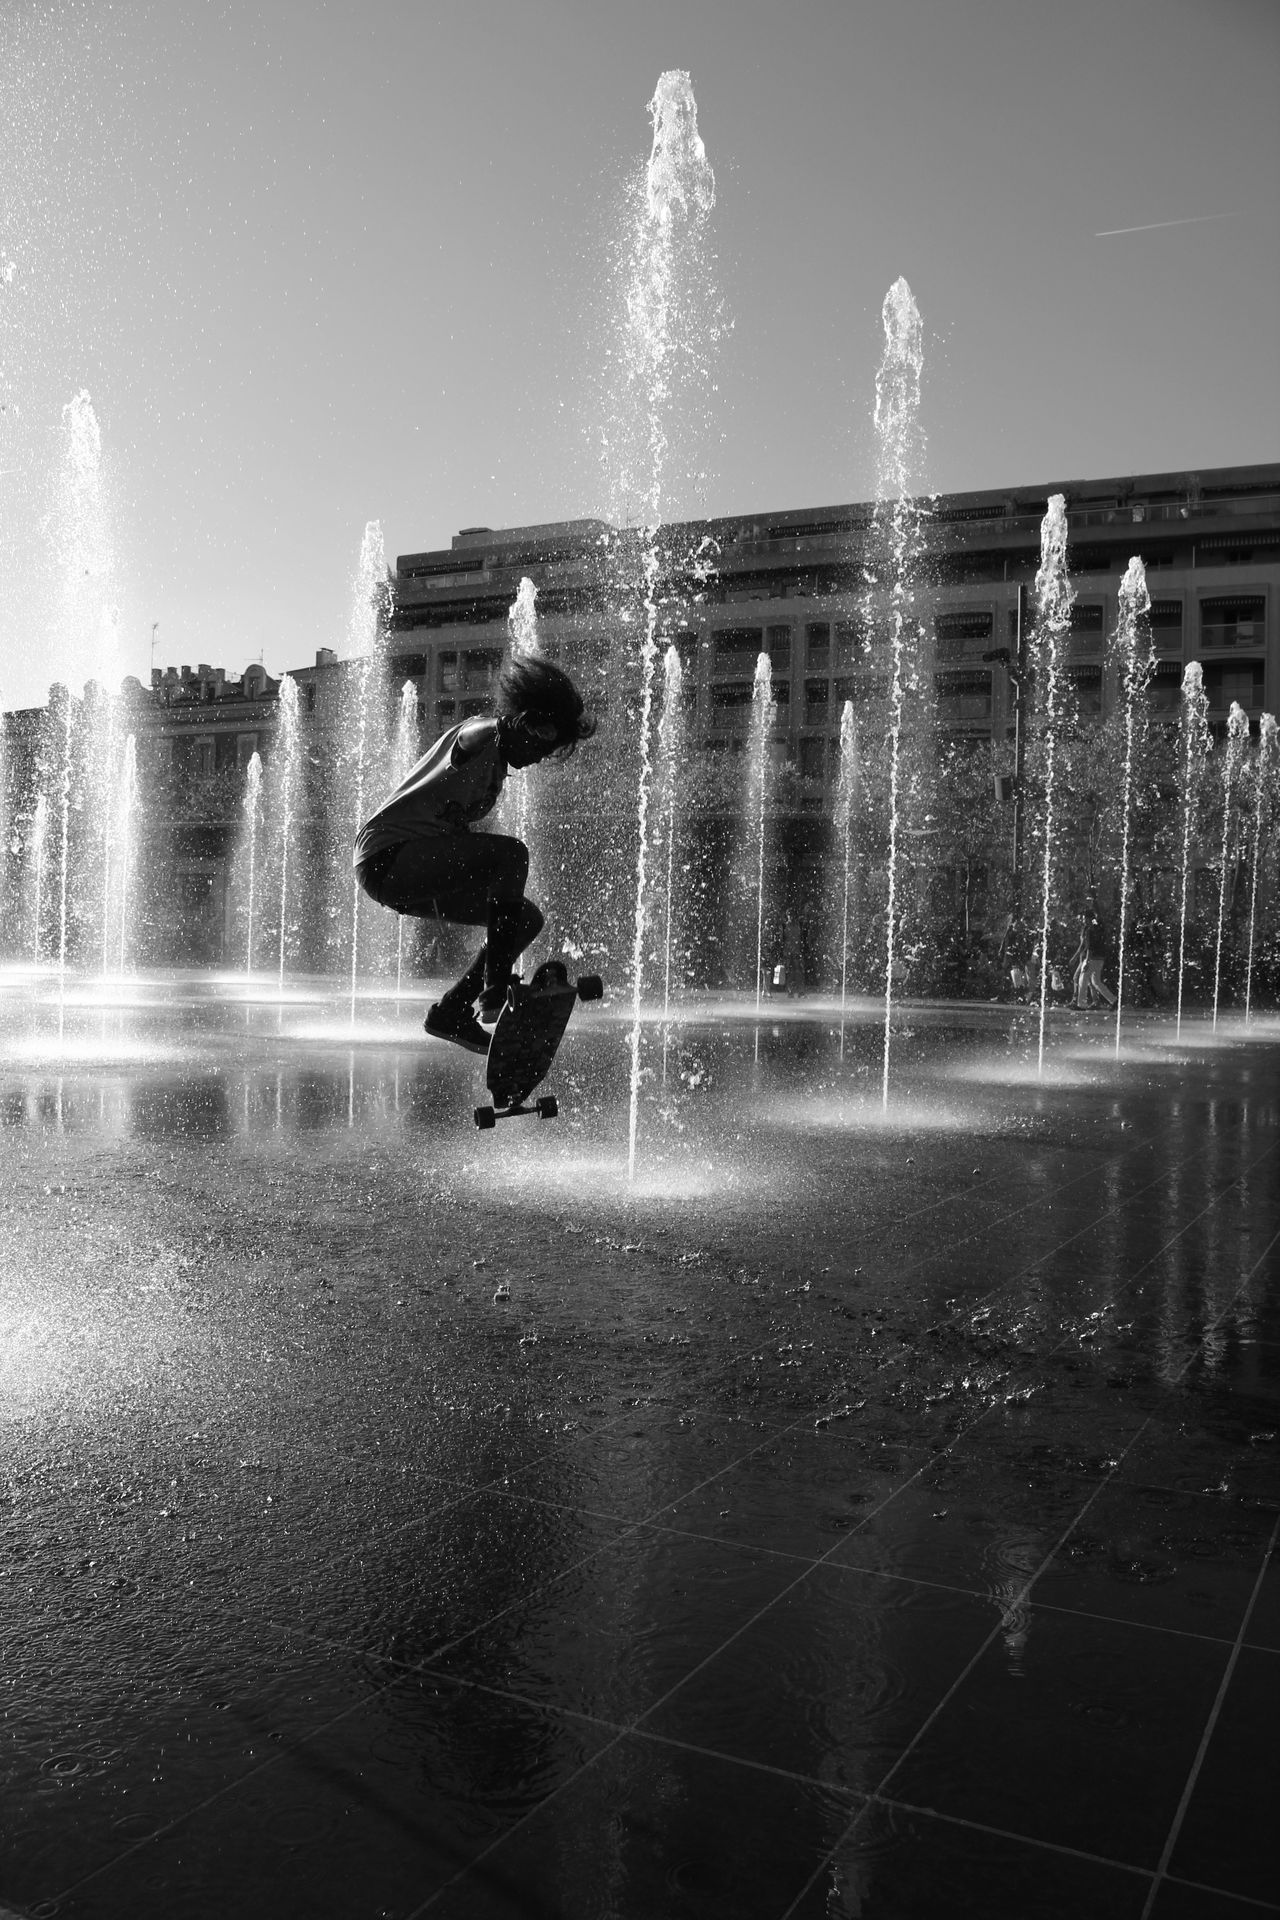 Splashing Motion Fountain Spraying Silhouette Sport Adventure Sky Full Length Women Who Inspire You Woman Skateboard Skatelife Skateboardlife SkateboardLifeStyle Bw_lover Bw_collection Blackandwhite Photography Outdoors Adults Only People Swimming Pool Adult Power In Nature Pixelated Sommergefühle